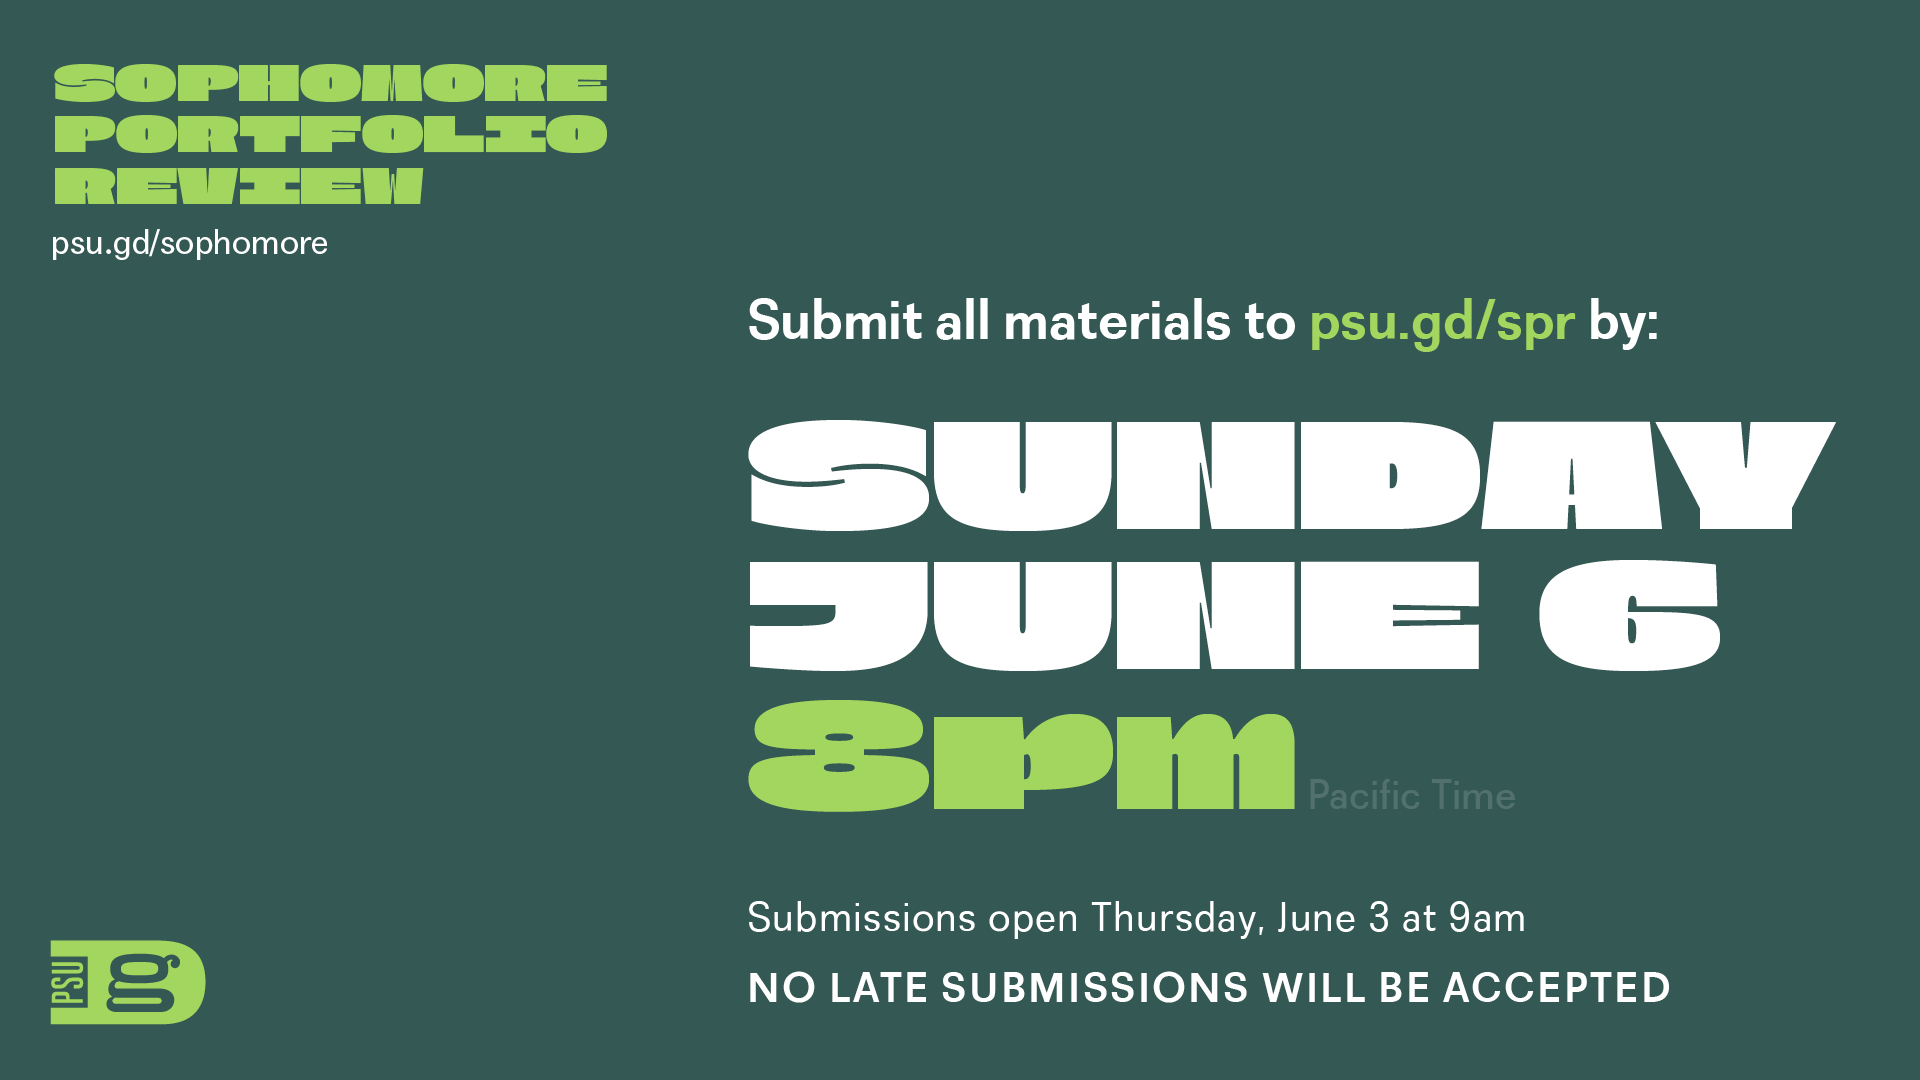 Sophomore Portfolio Review (psu.gd/sophomore). Submit all materials to psu.gd/spr by Sunday, June 6 at 8pm Pacific. Submissions open Thursday June 3 at 9am. NO LATE SUBMISSIONS WILL BE ACCEPTED.